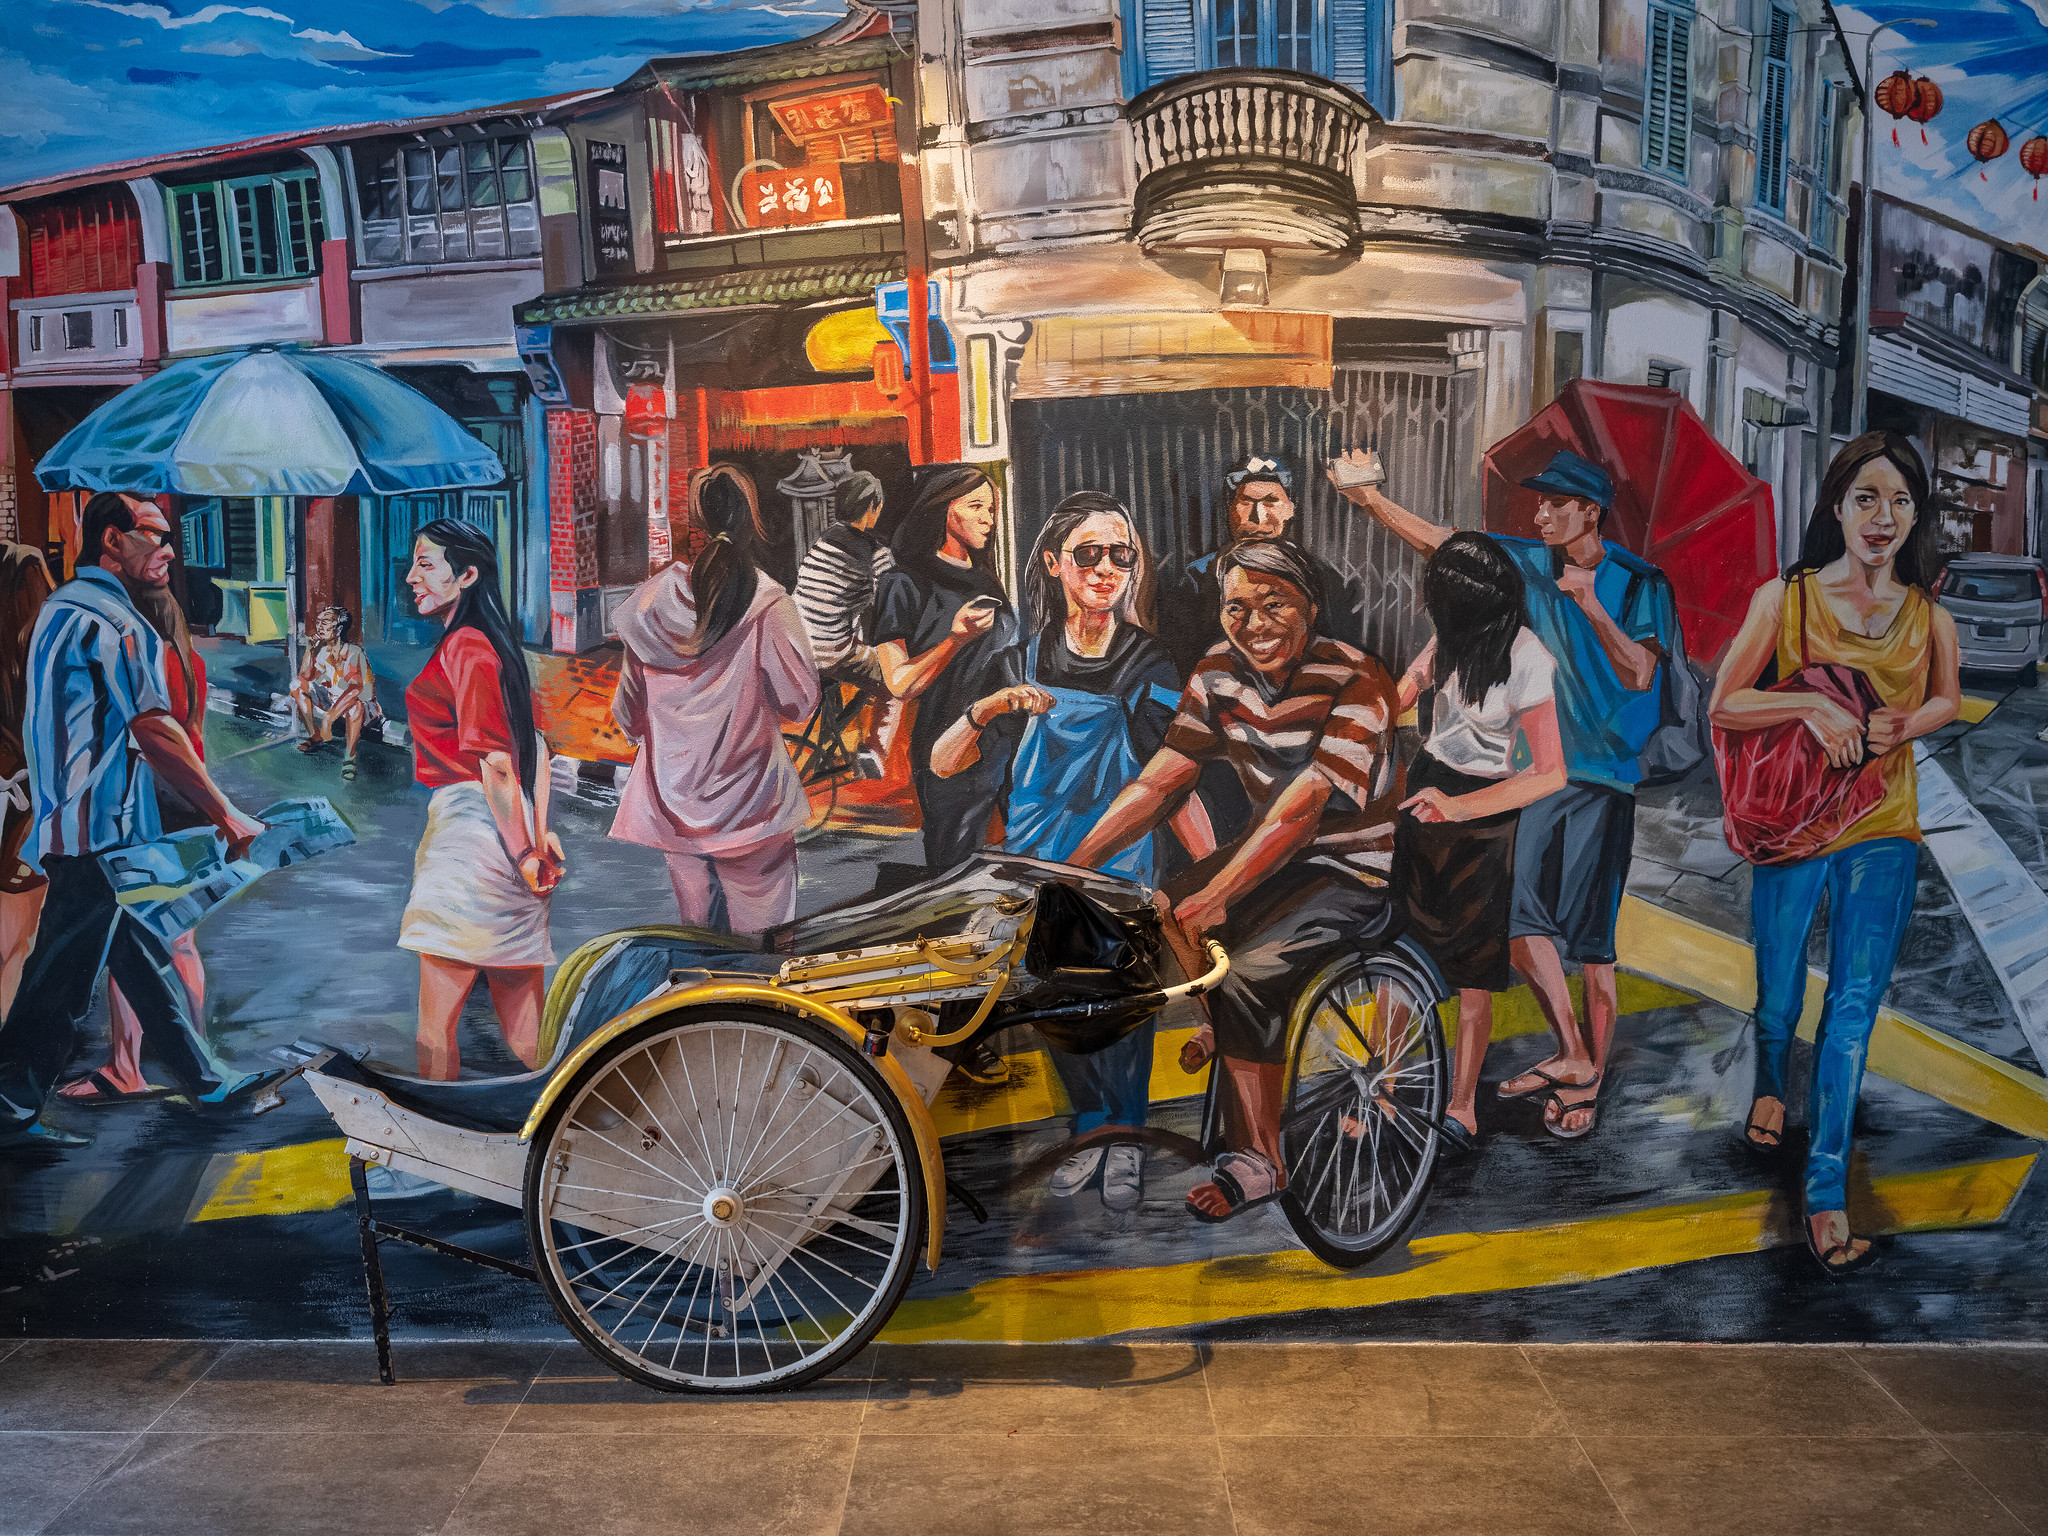 Nice-looking mural at the entrance of Makan Kitchen